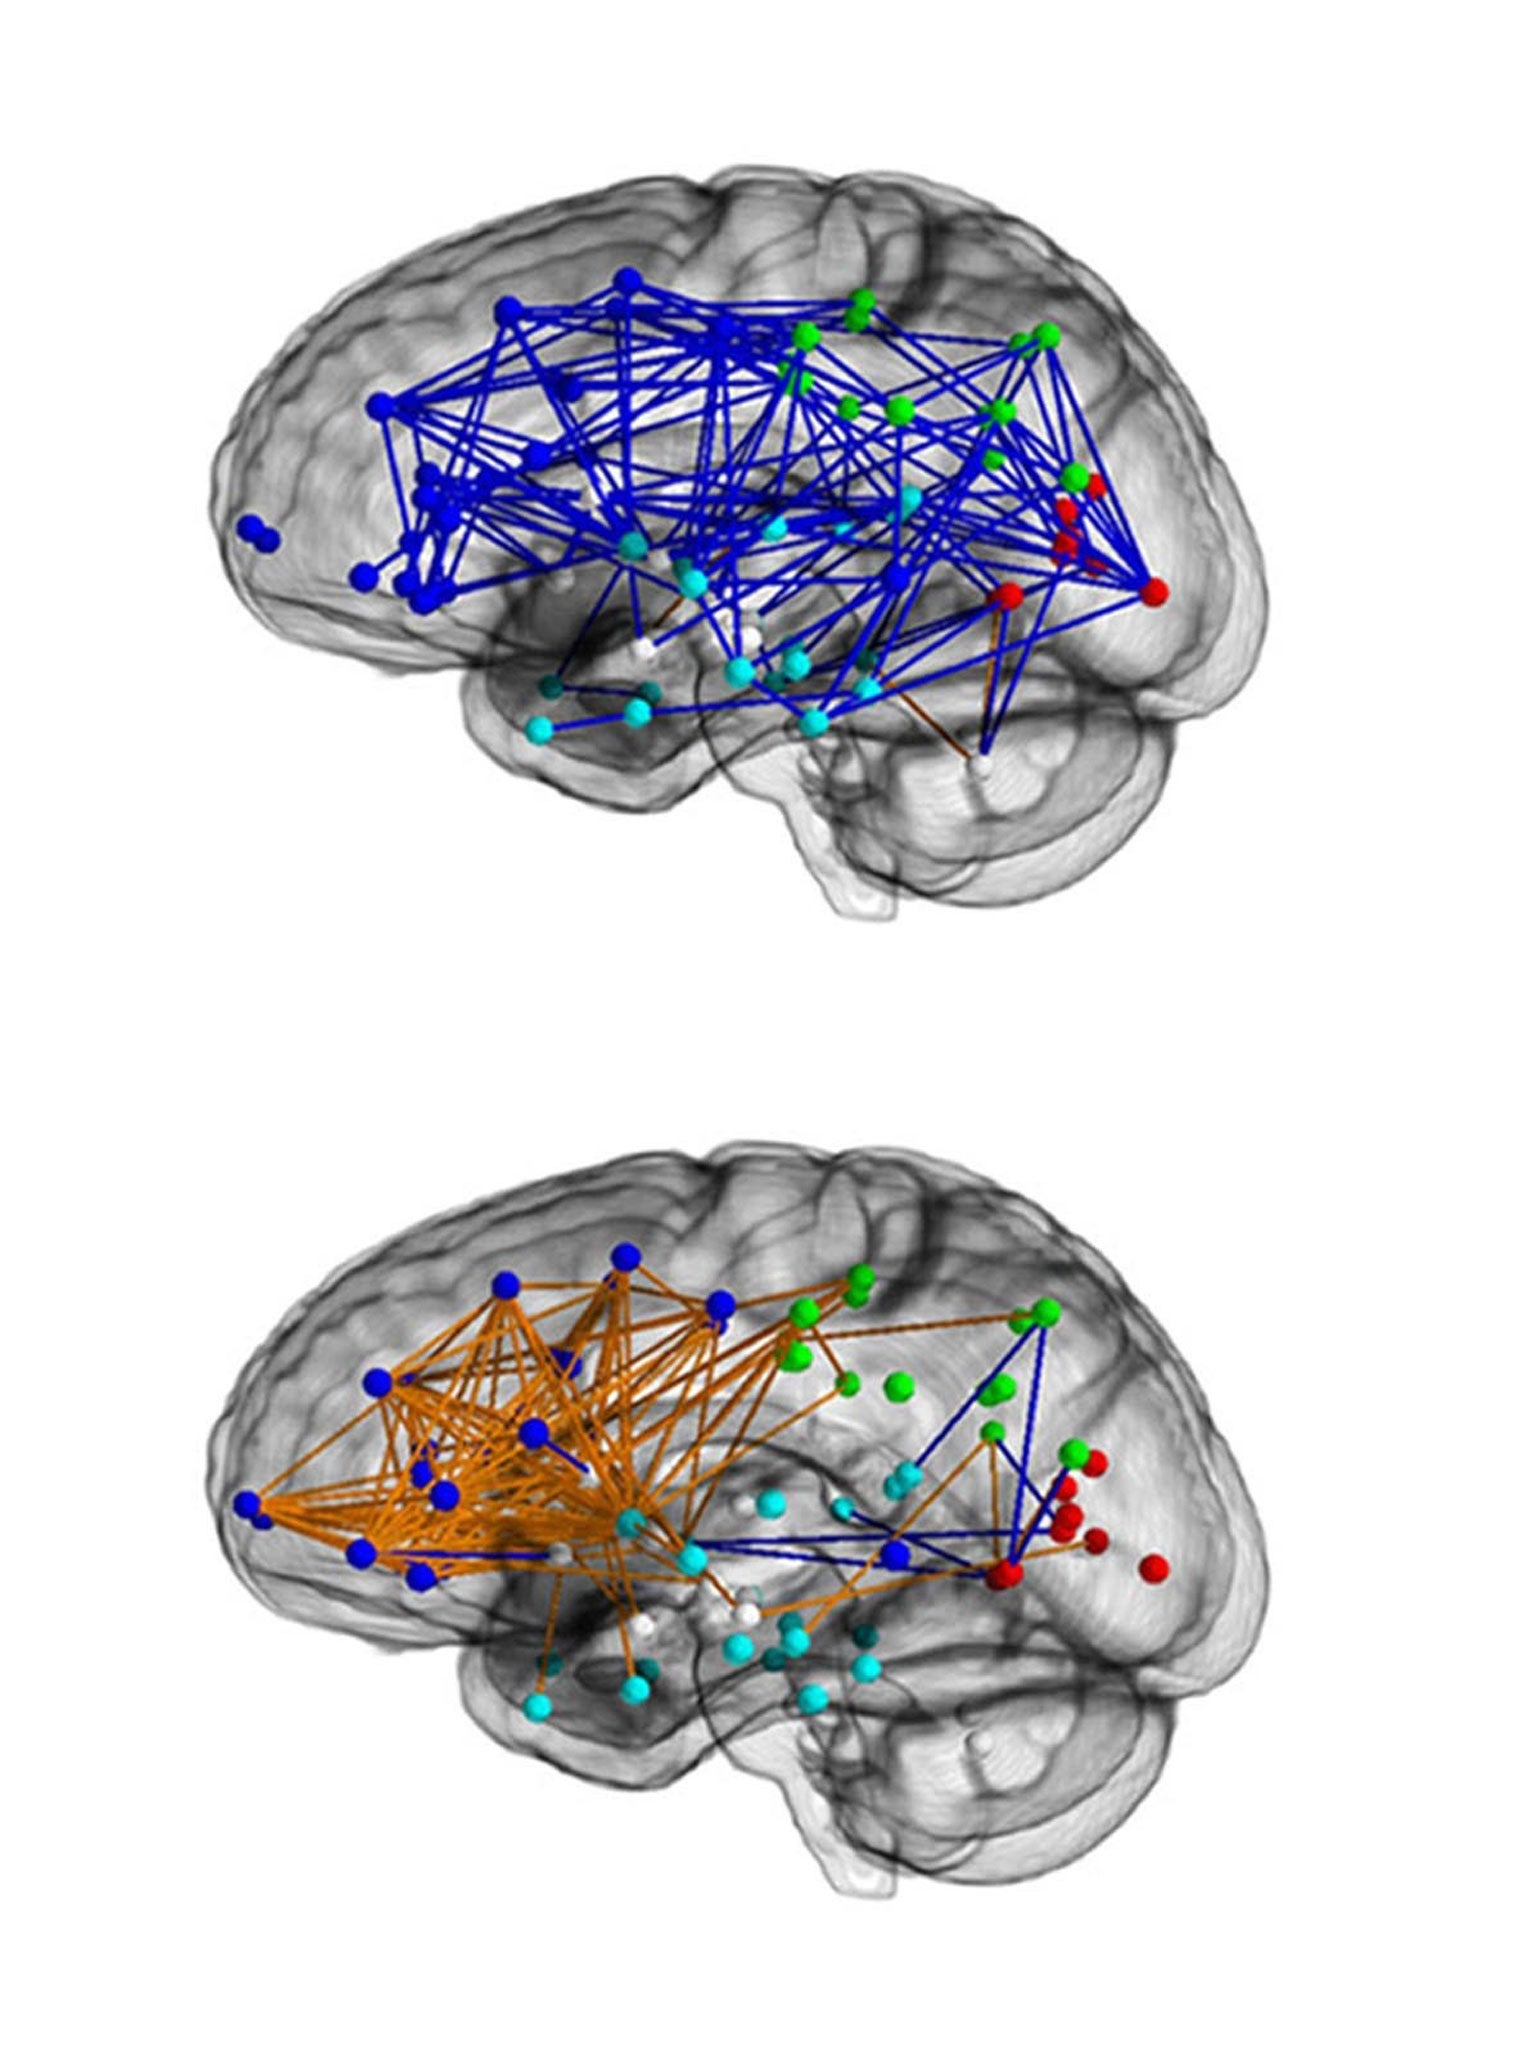 differences between male and female brain essay Research shows that female and male brain tissues are significantly different in males, many areas of the brain have protein coded by the y chromosome, whereas these proteins are absent in women's brain tissue.